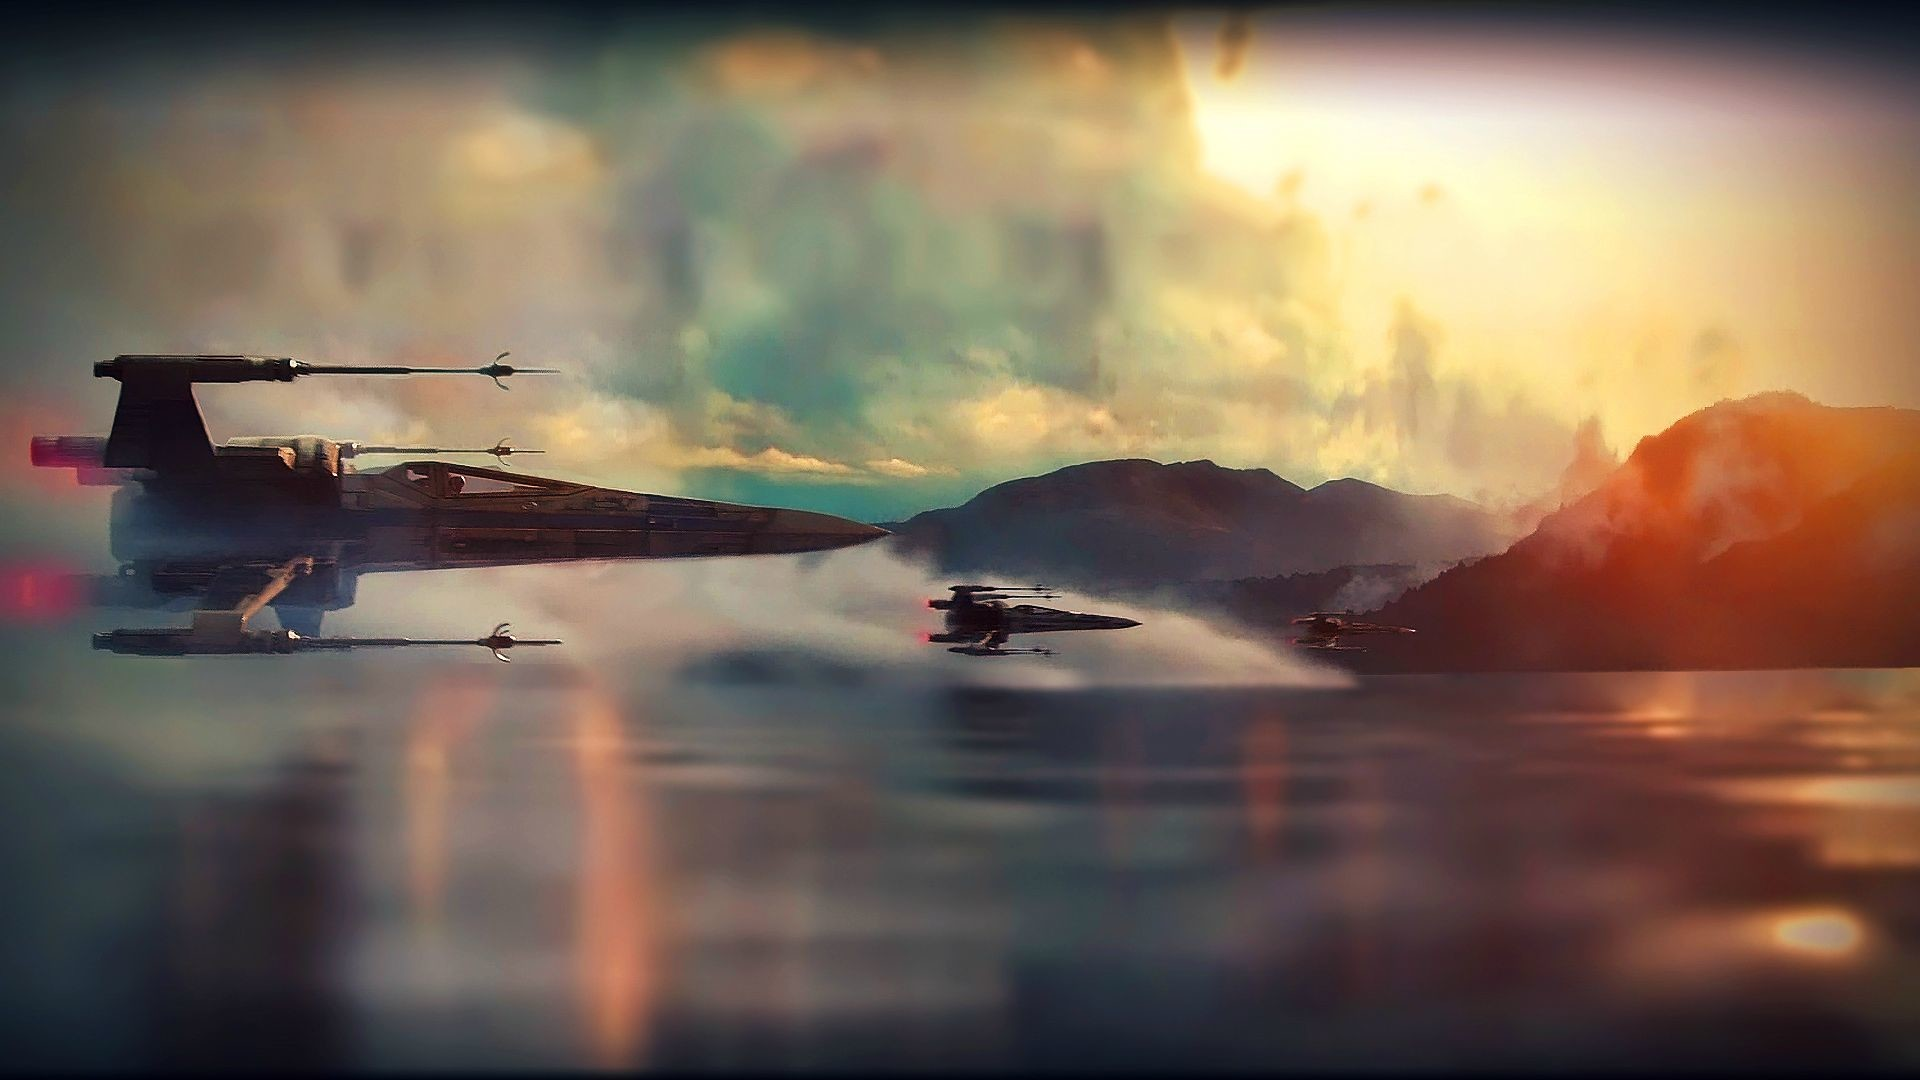 1920x1080 Star Wars Ep VII: The Force Awakens Teaser X-Wing Super Saturated/Colorful   Wallpaper ...